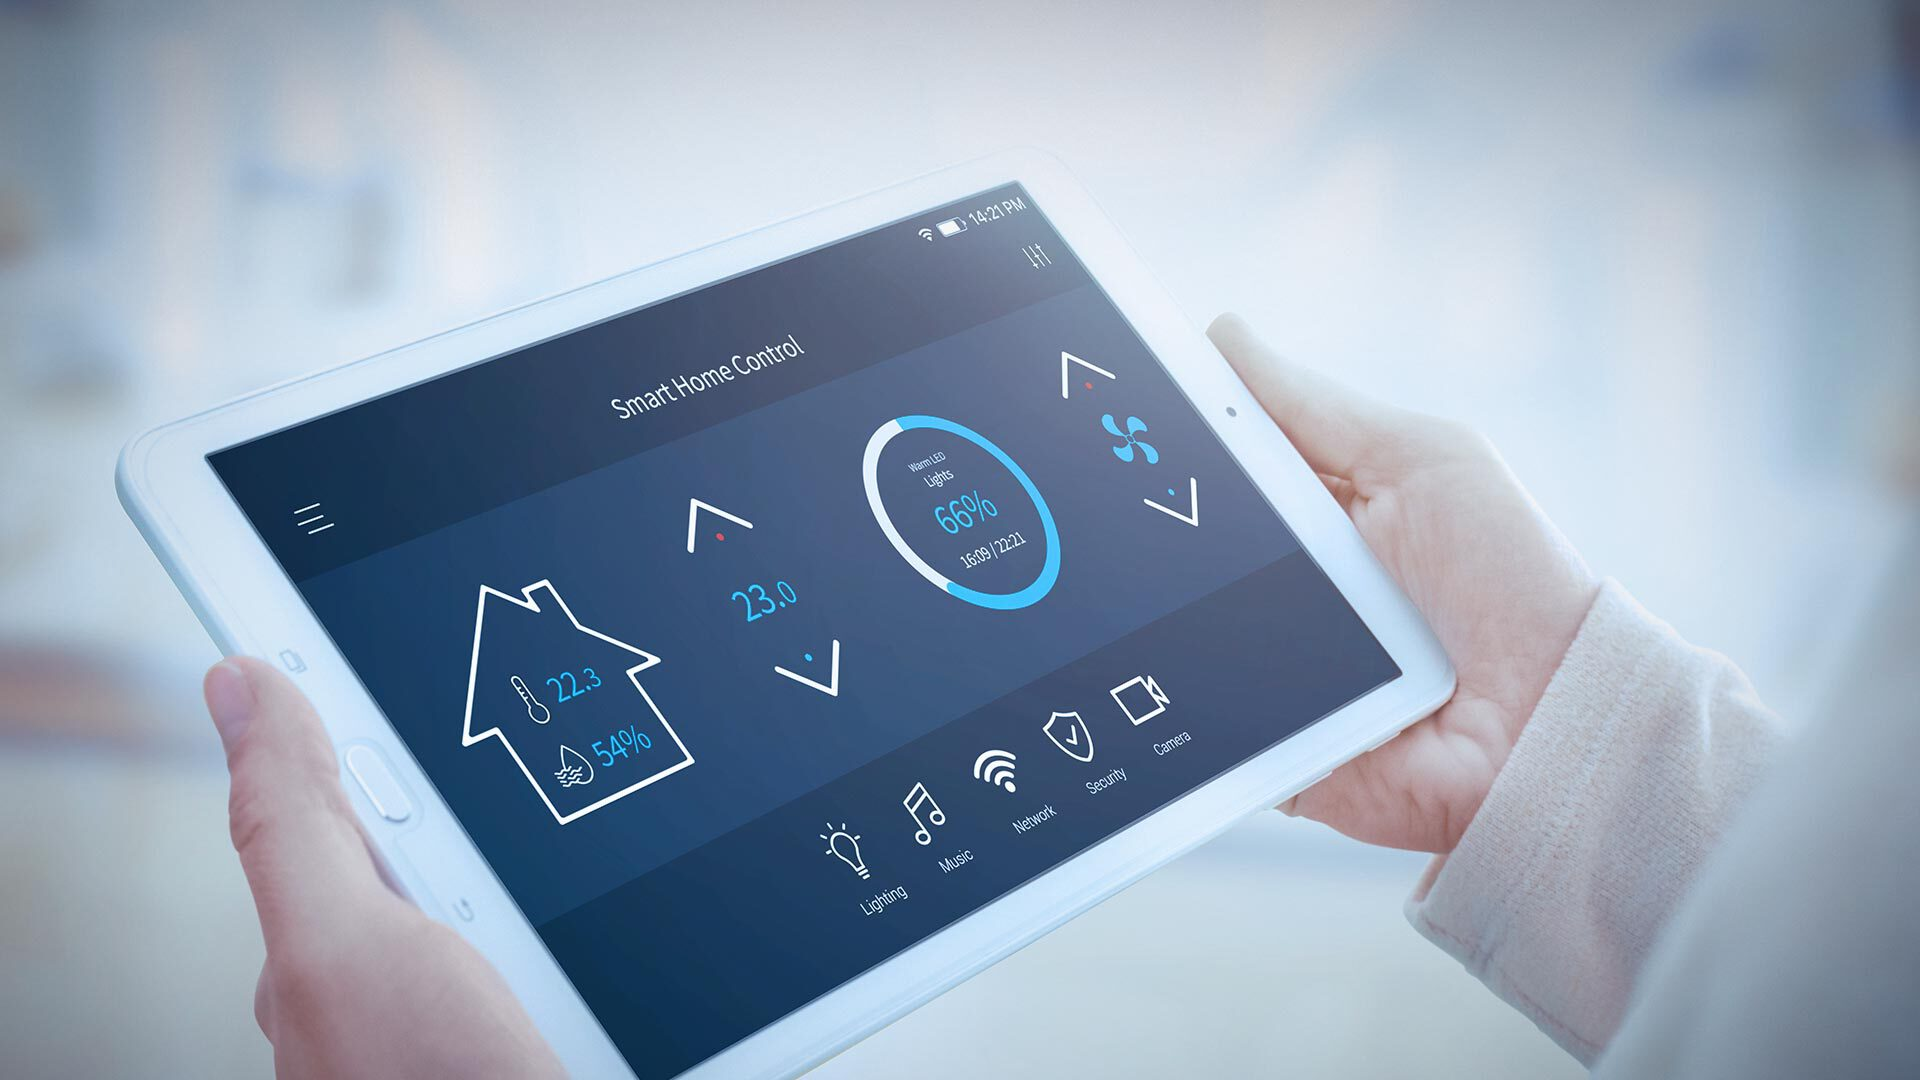 The necessity of IoT Security illustrated by a smart home control on a tablet